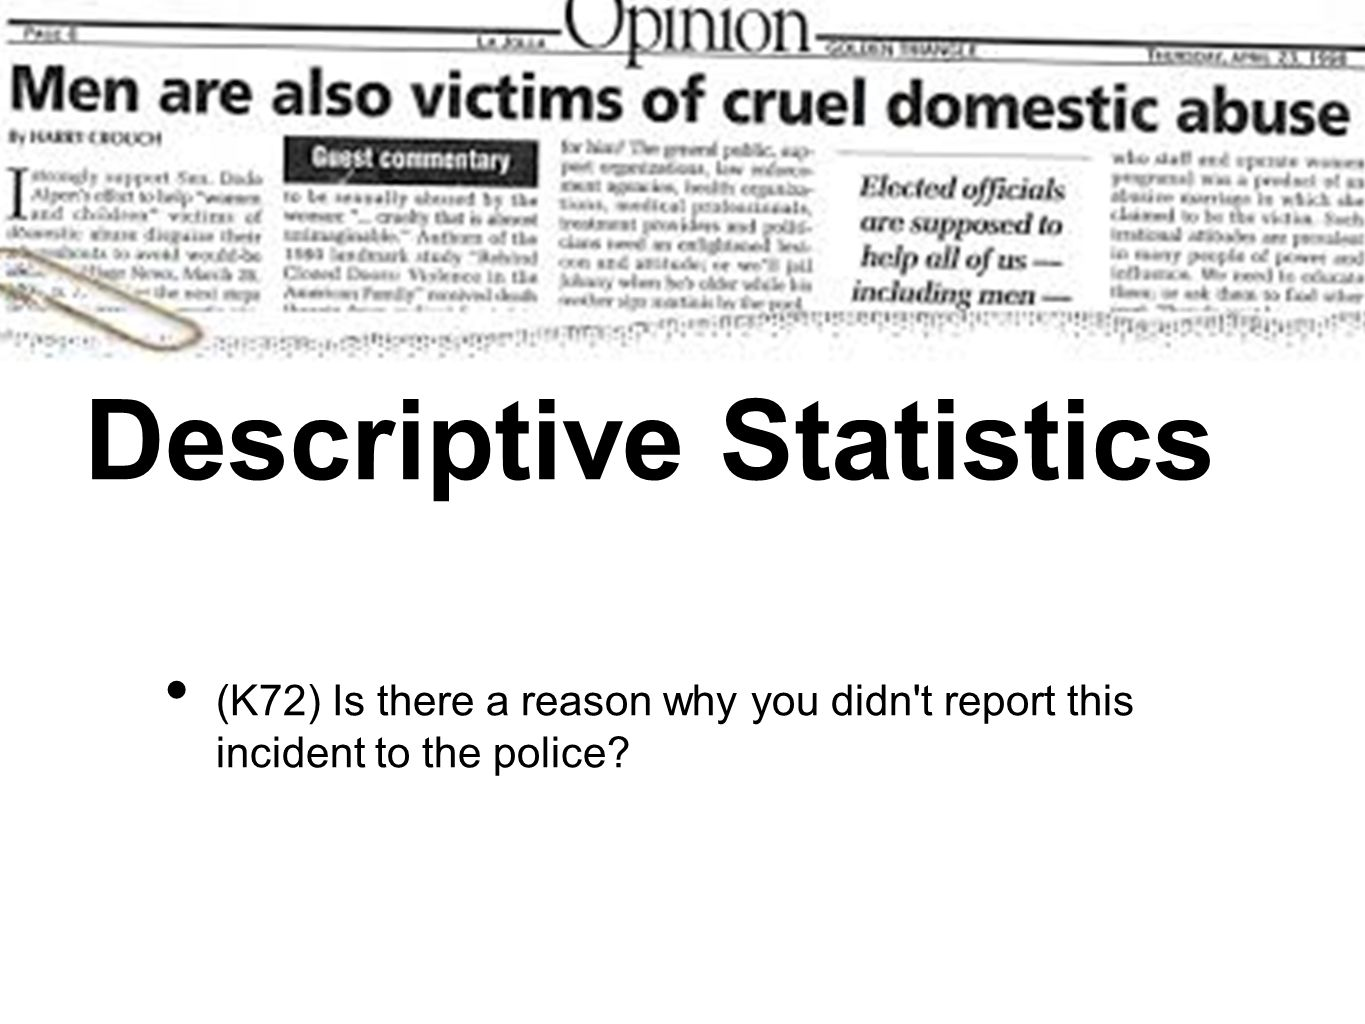 Descriptive Statistics (K72) Is there a reason why you didn't report this incident to the police?